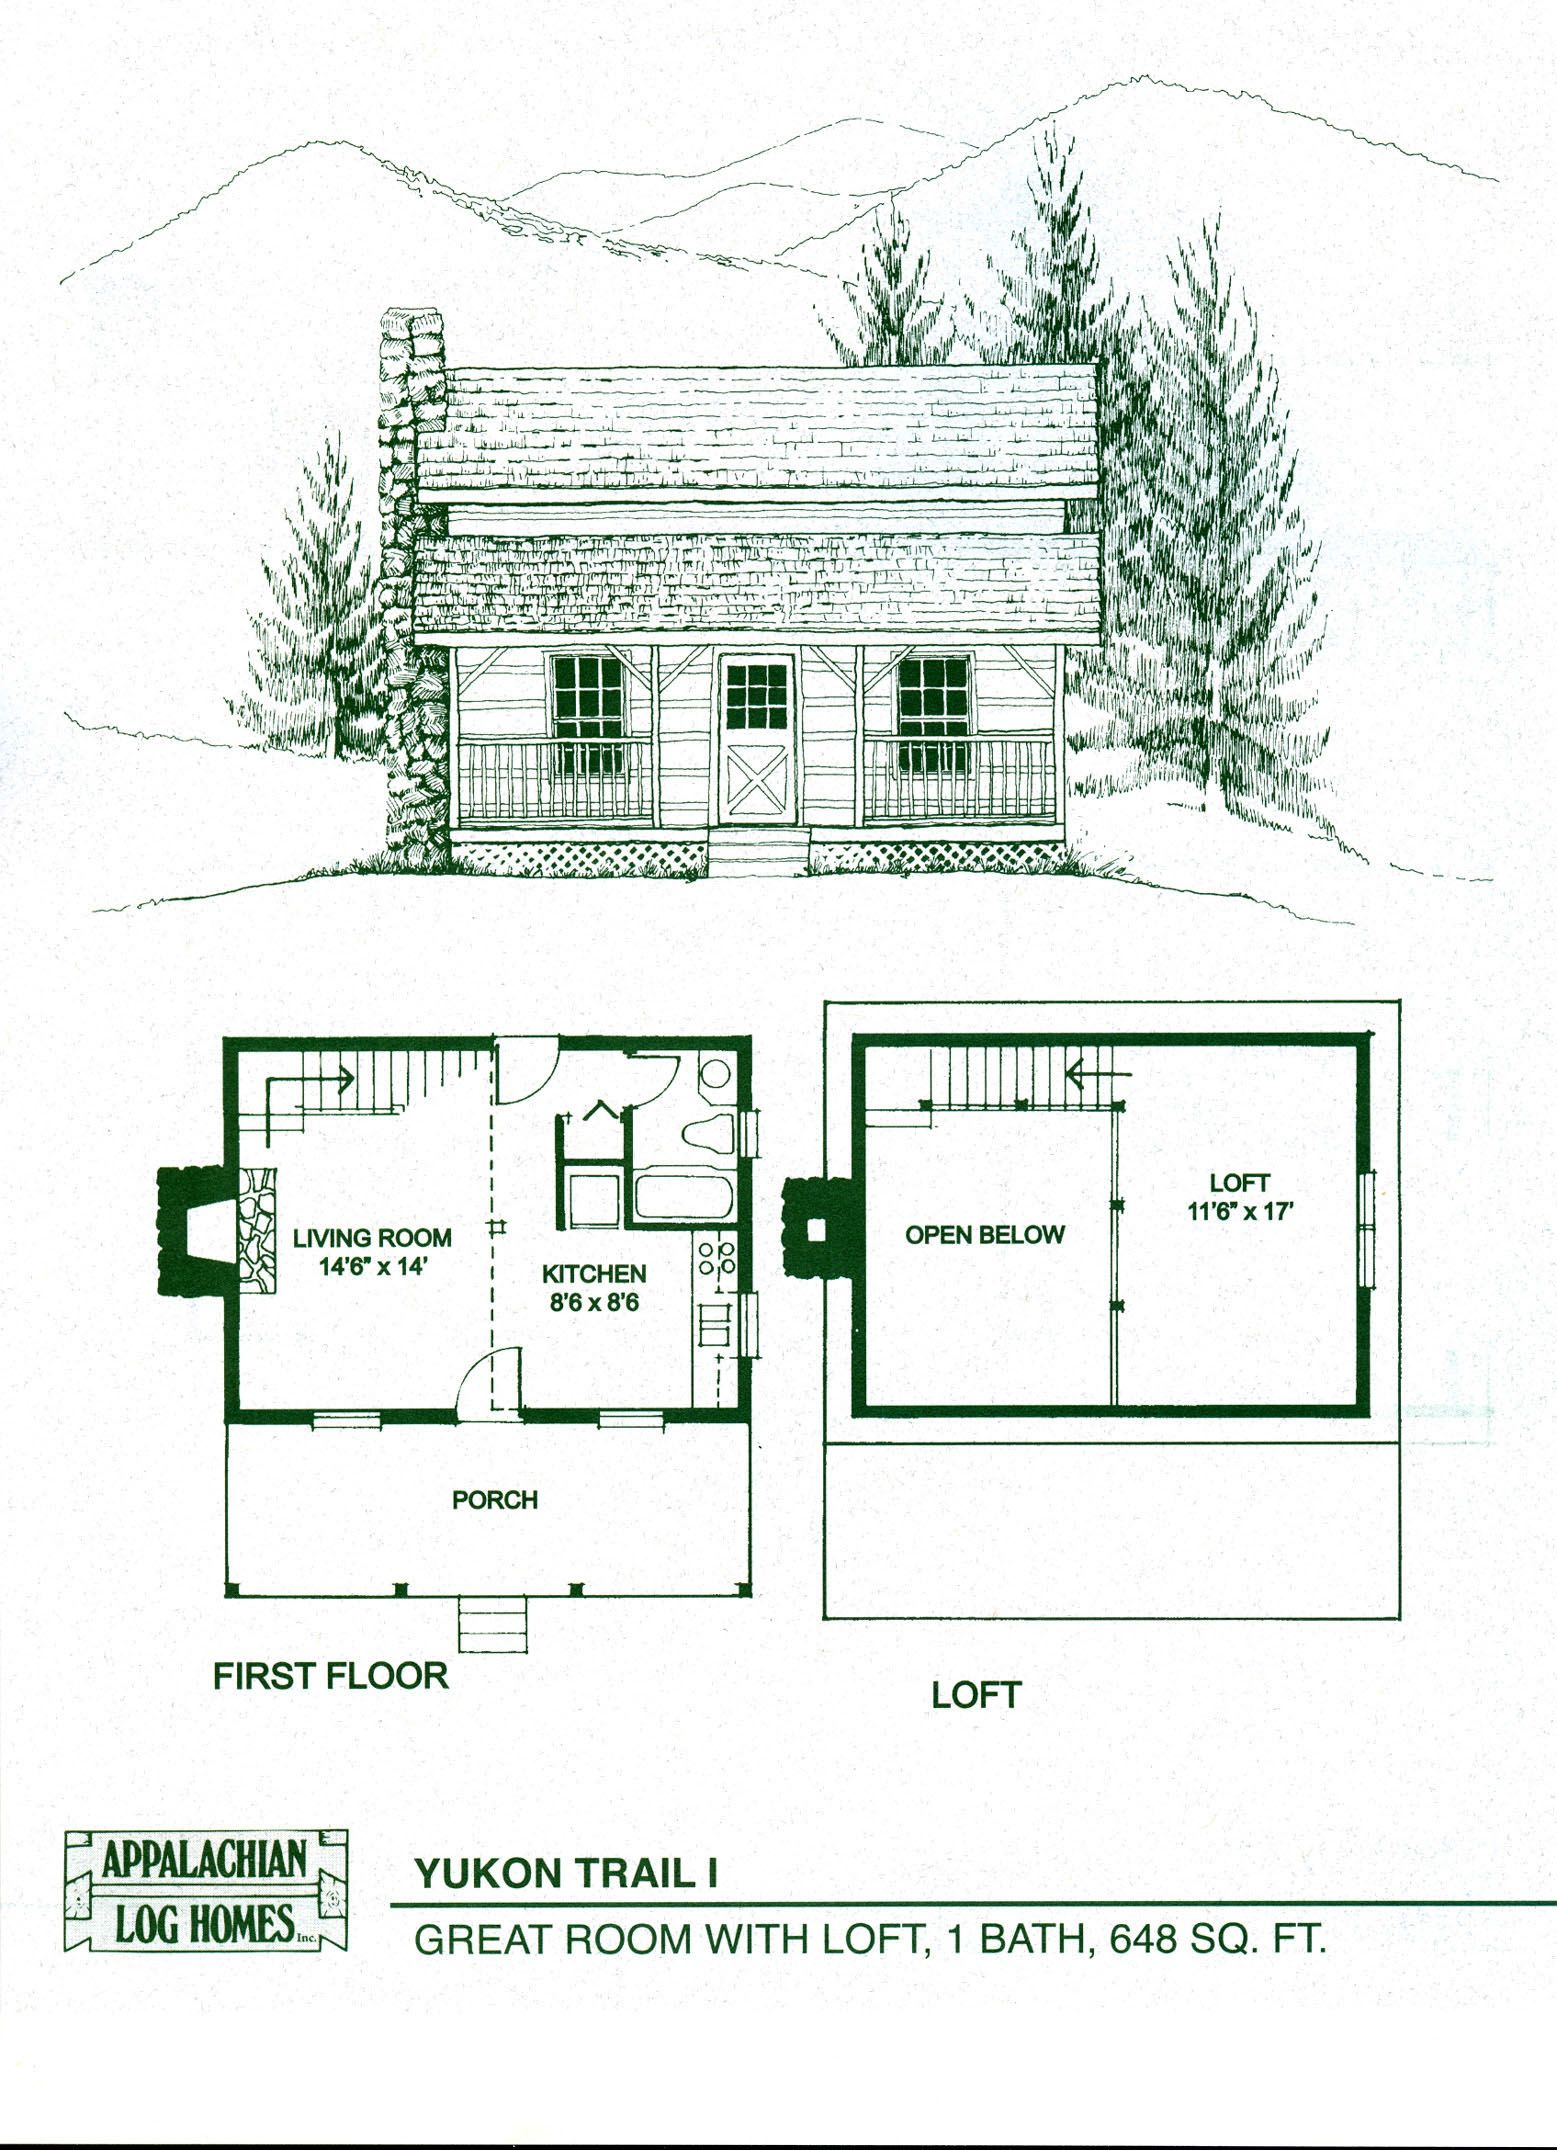 log home floor plans log cabin kits appalachian log On log cabin lodge floor plans